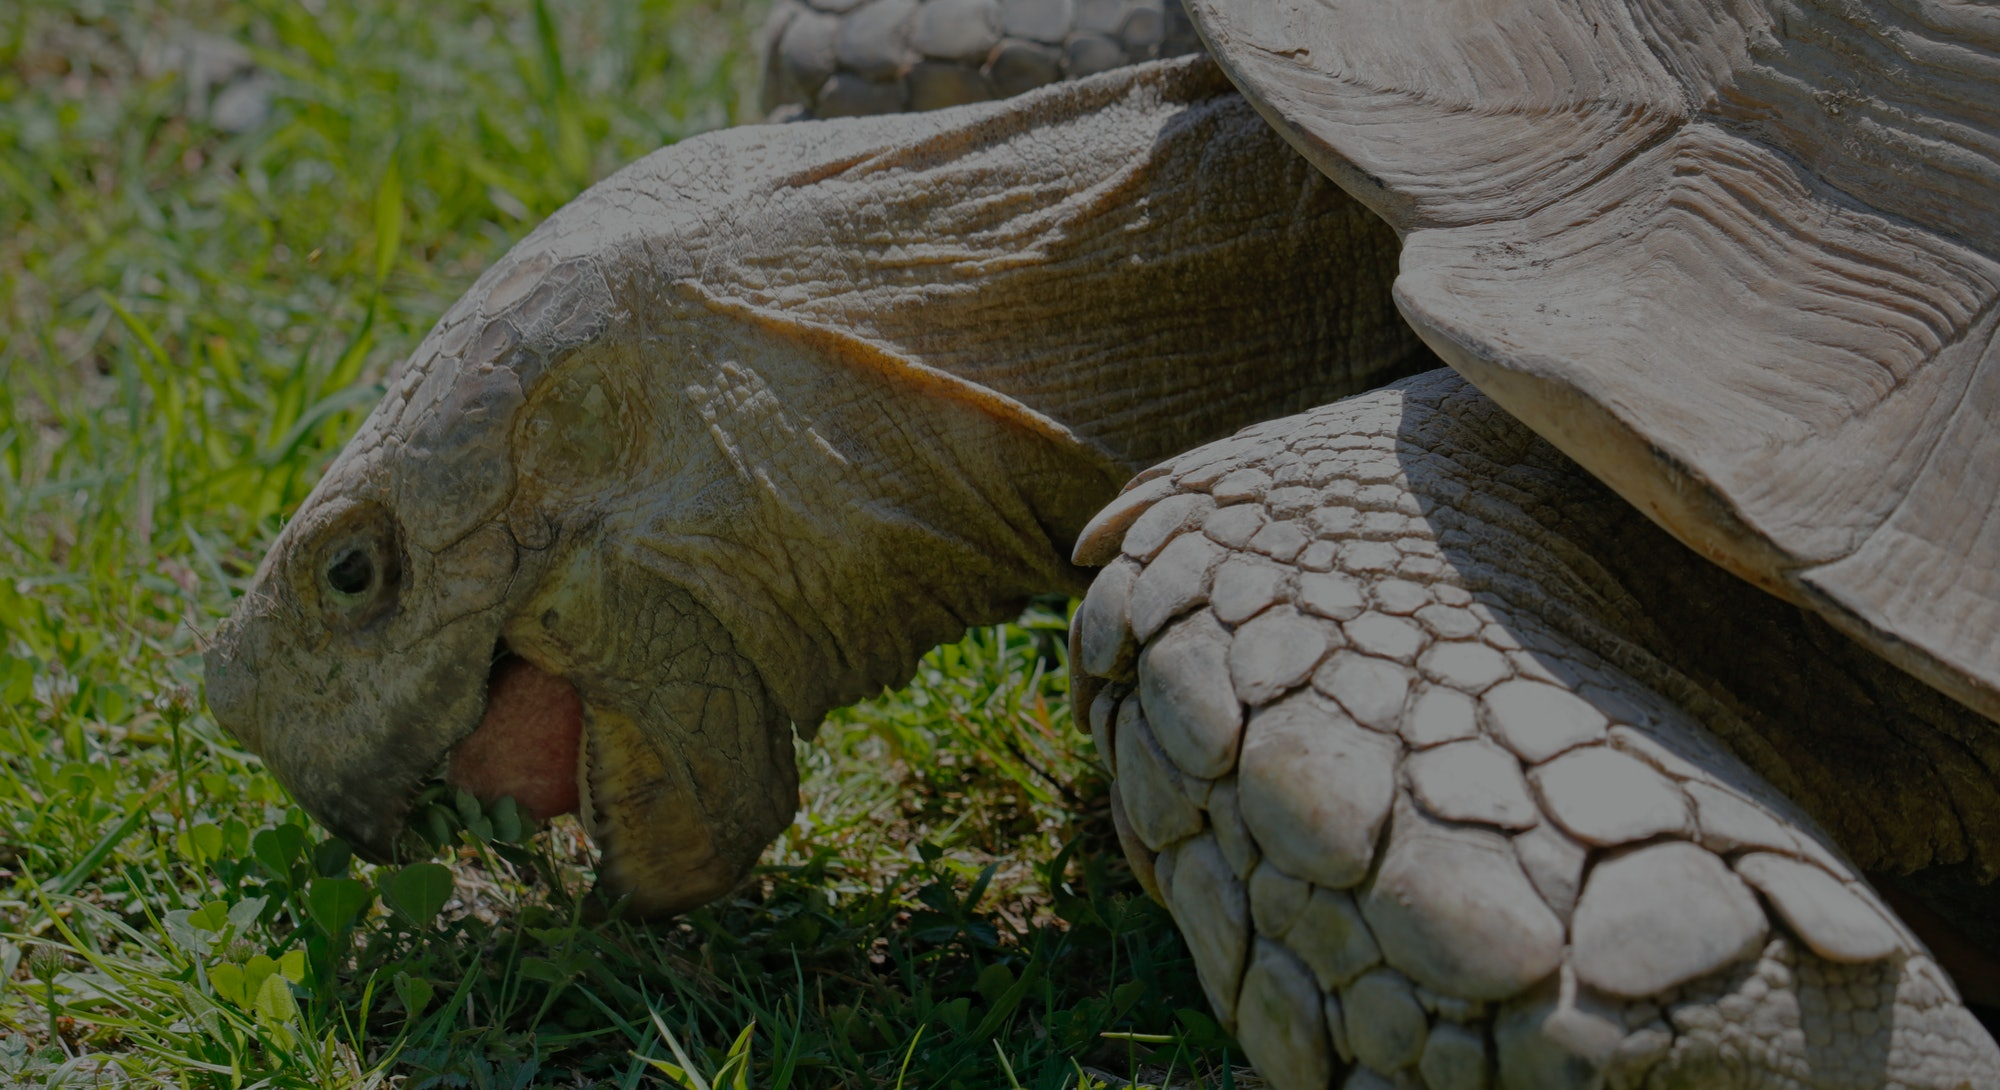 Close up on a furrowed turtle (Centrochelys sulcata) eating grass.